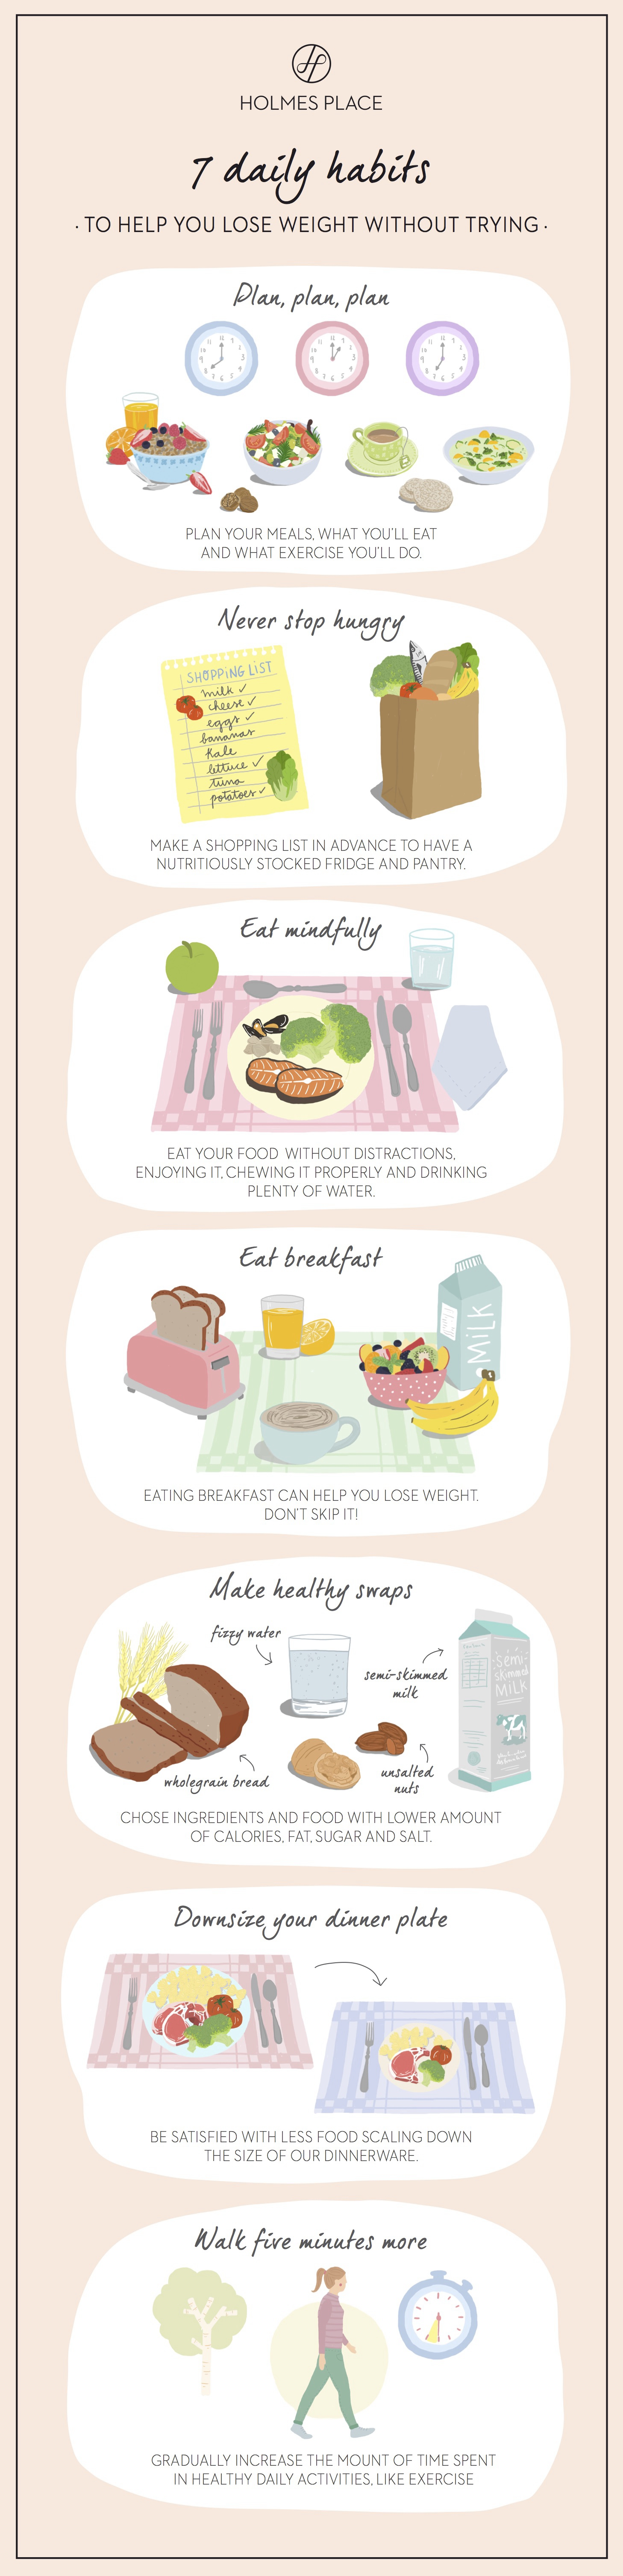 Holmes Place  illustration infographic healthy habits lose weight